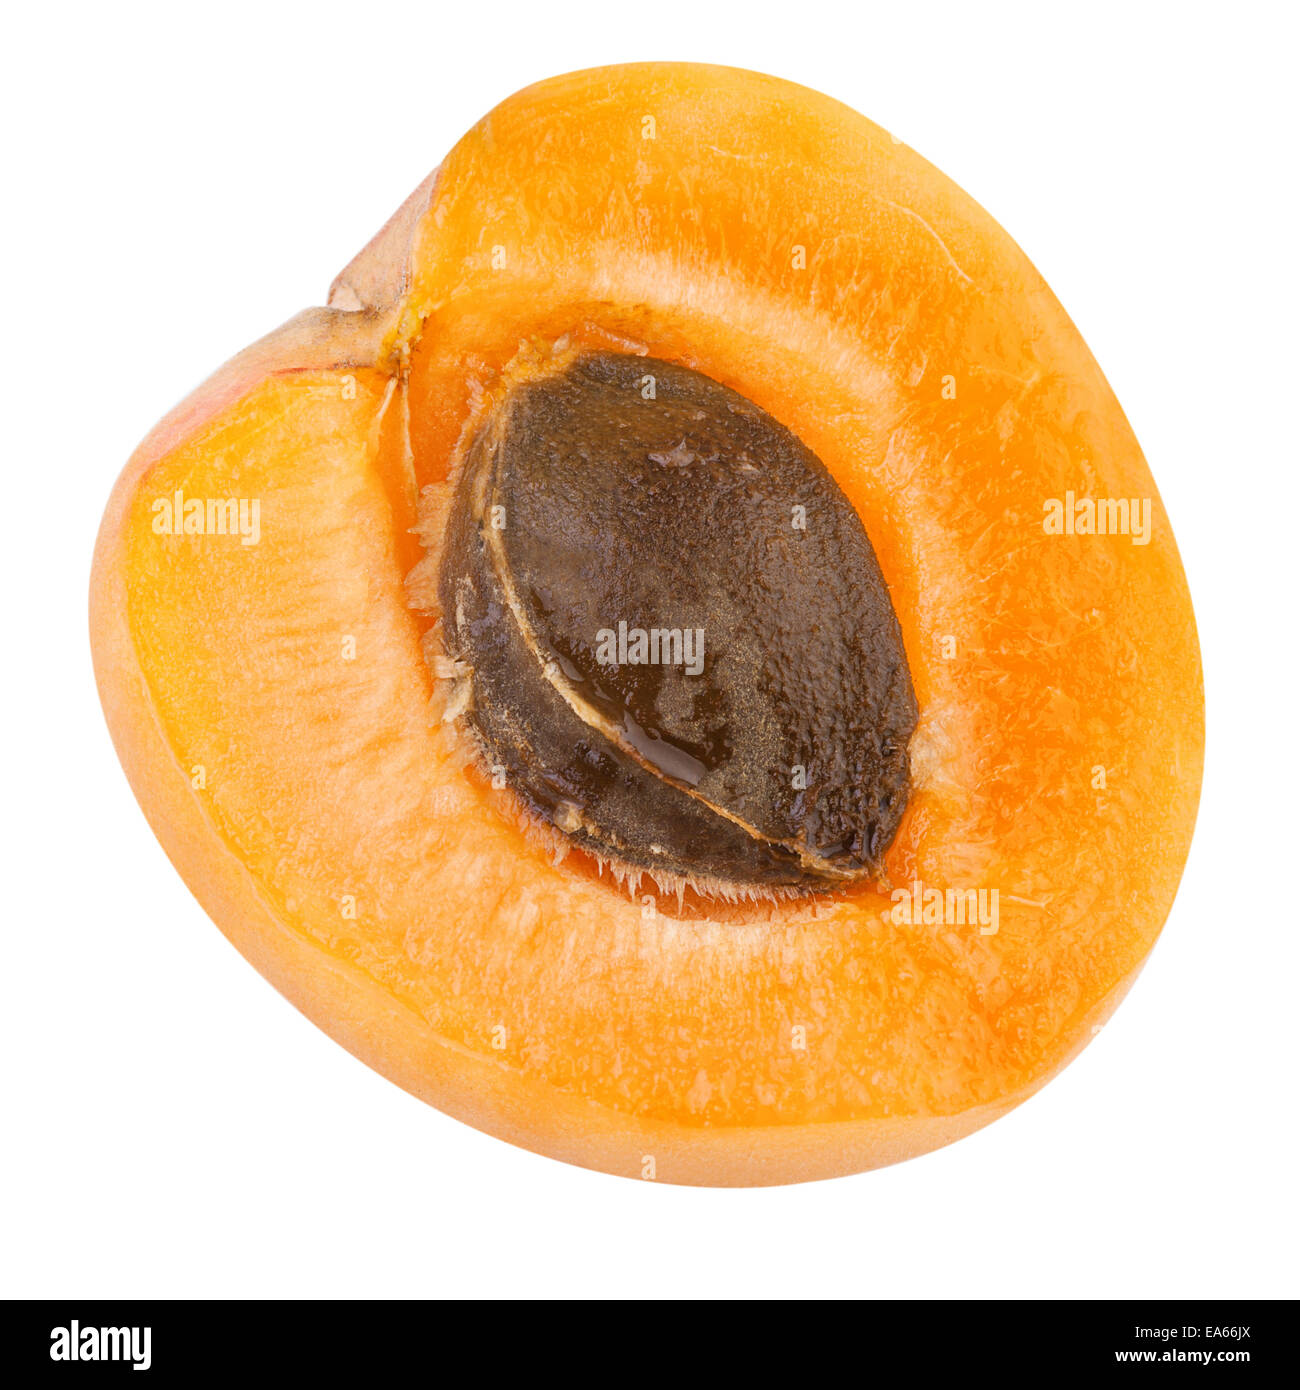 Half of a Apricot with fruit core - Stock Image